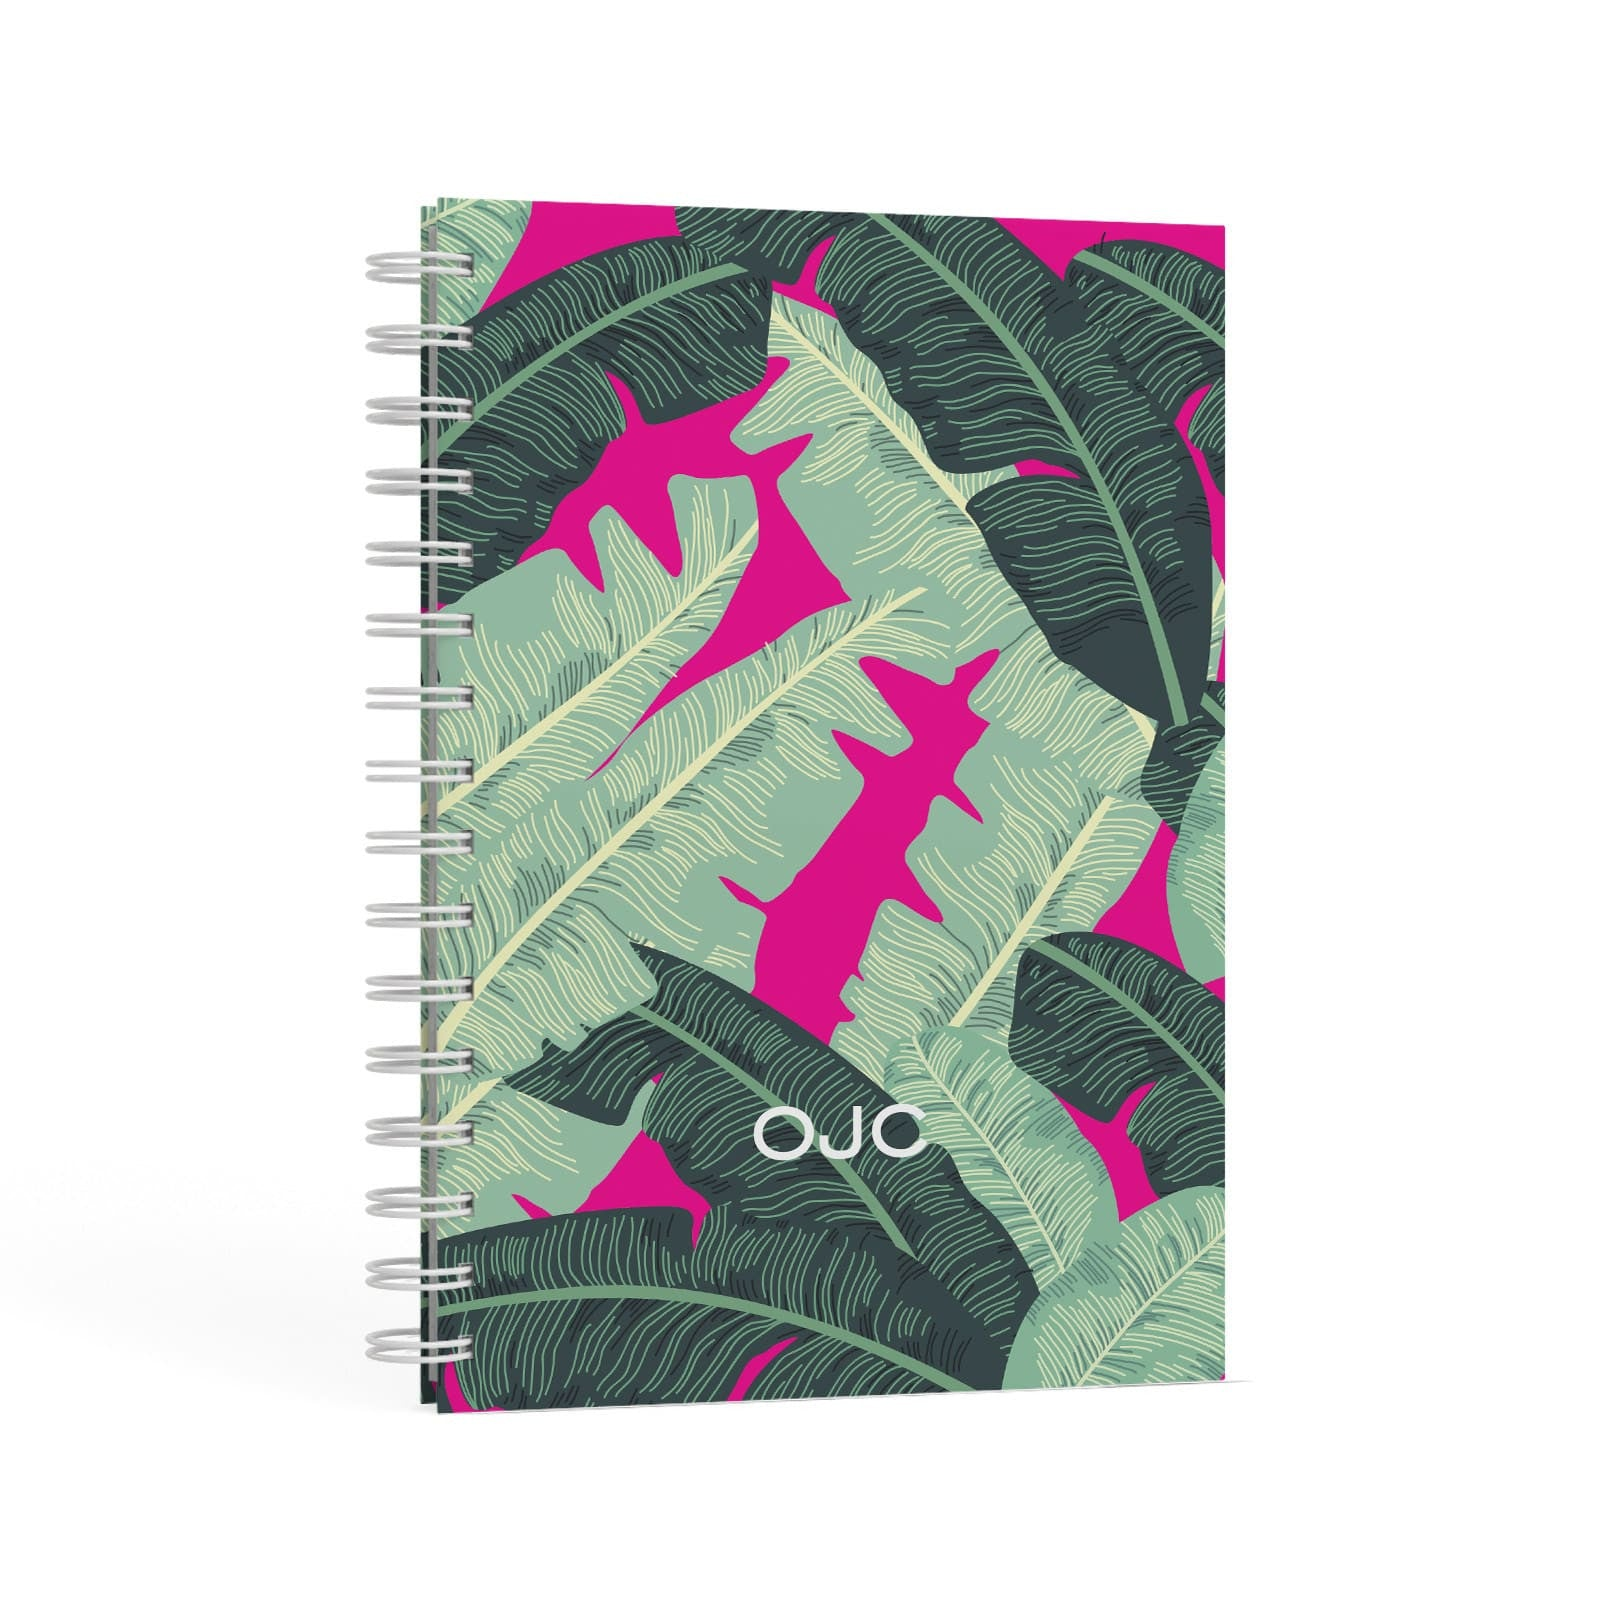 Personalised Banana Leaves A5 Hardcover Notebook Second Side View